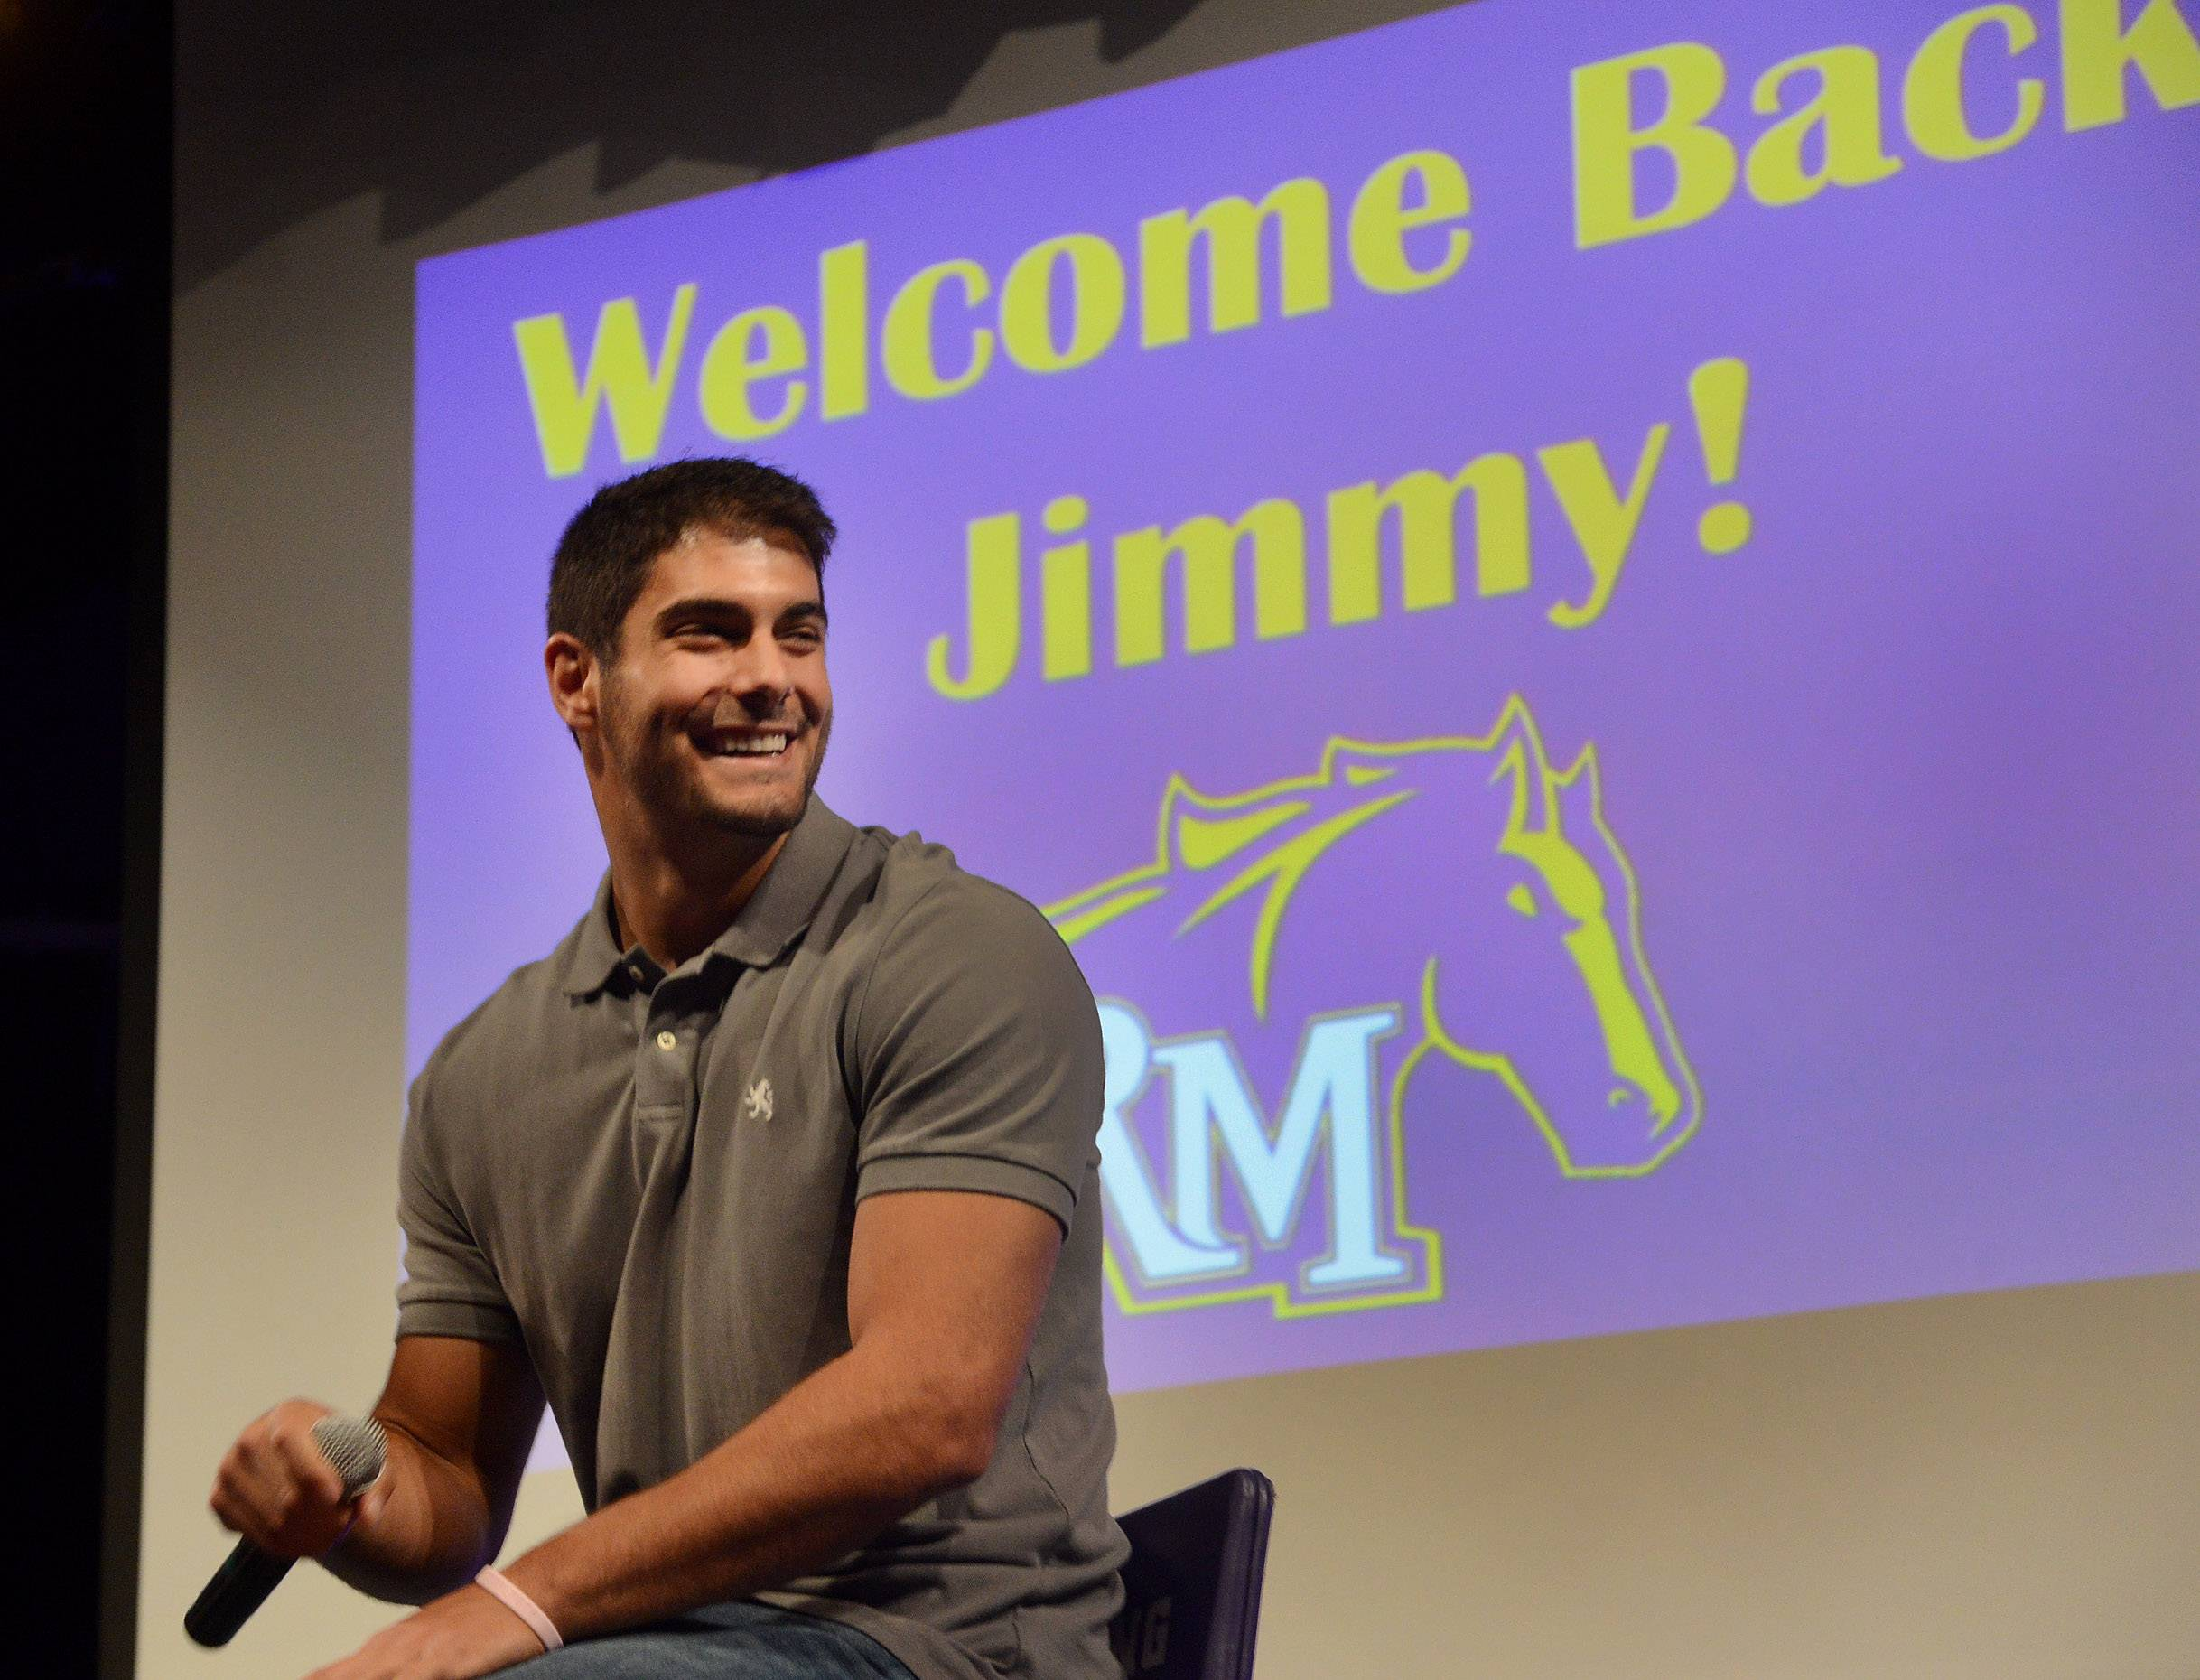 NFL quarterback prospect Jimmy Garoppolo returned to Rolling Meadows High School on Thursday morning to reunite with former coaches and players and to talk to students.